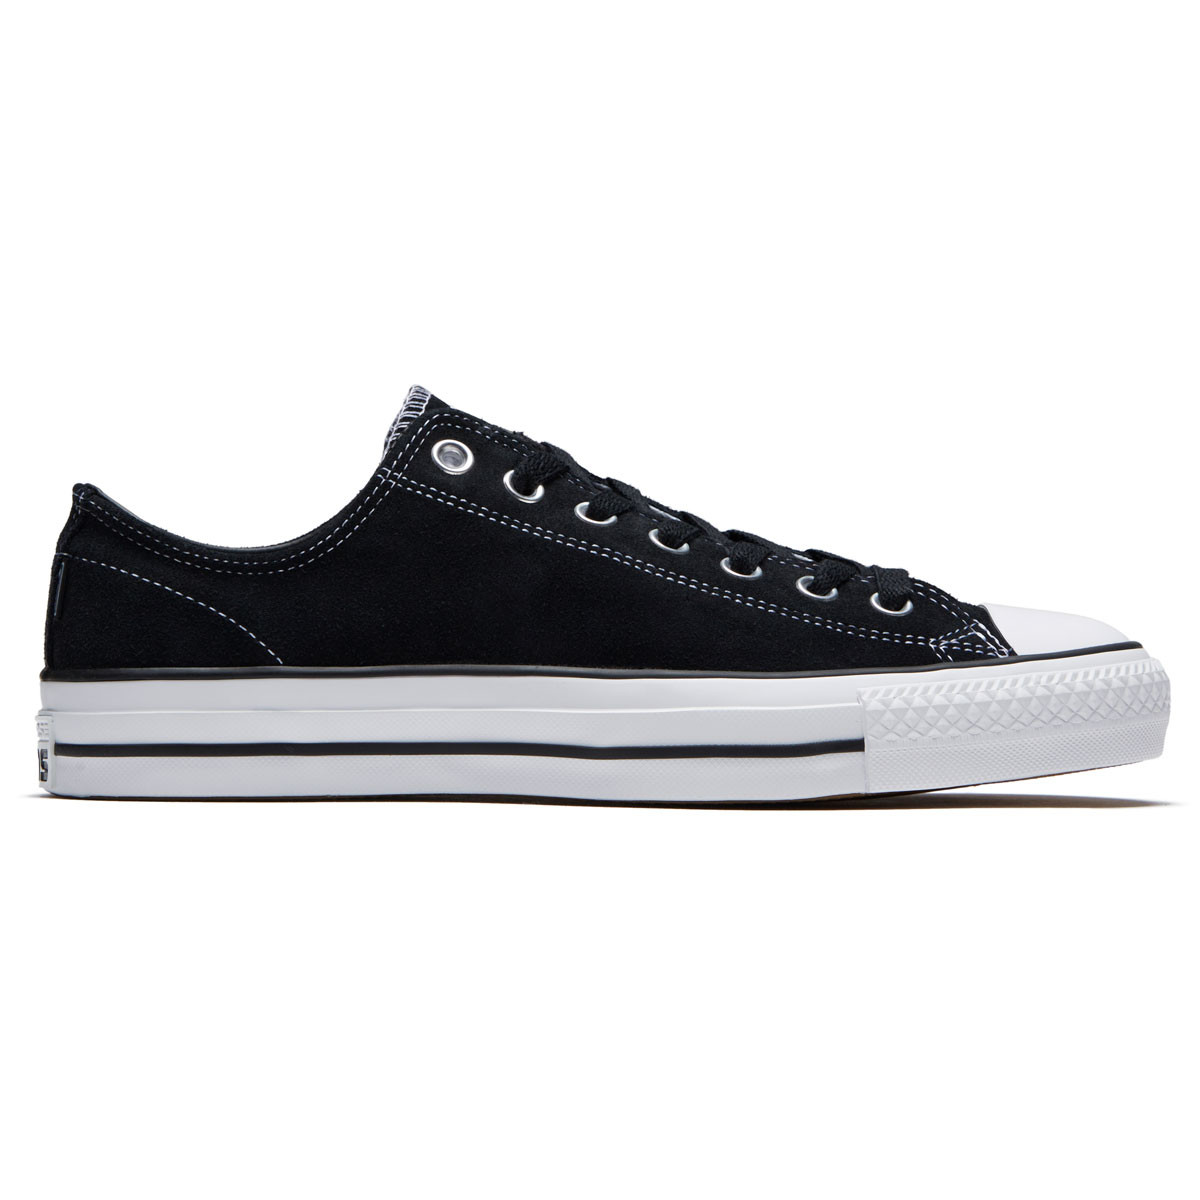 07e543bd747d Converse CTAS Pro OX Suede Shoes - Black Black White - 6.0